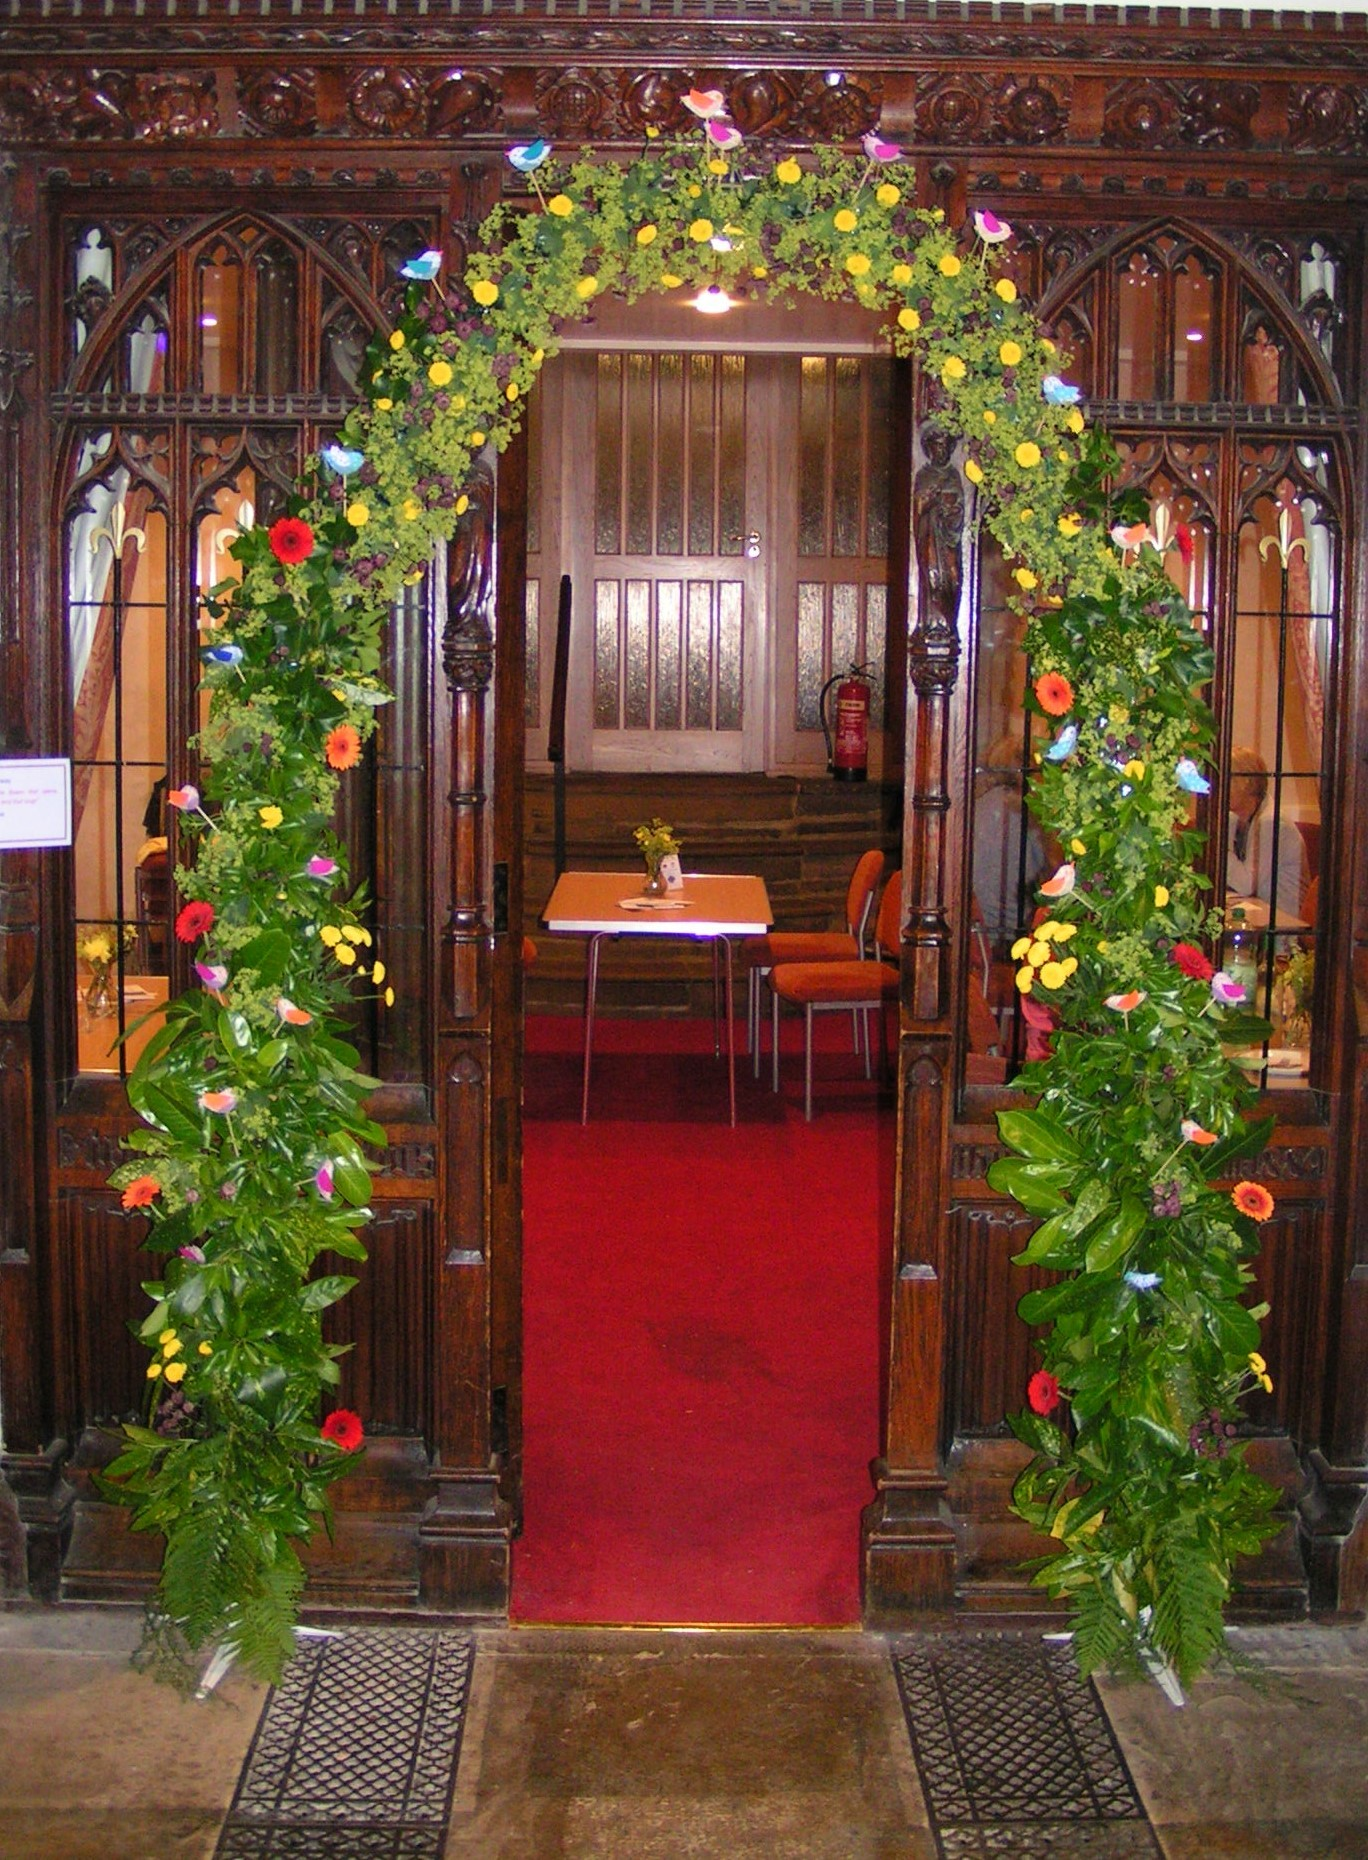 One of the displays from last year's Flower Festival at Otley All Saints Parish Church